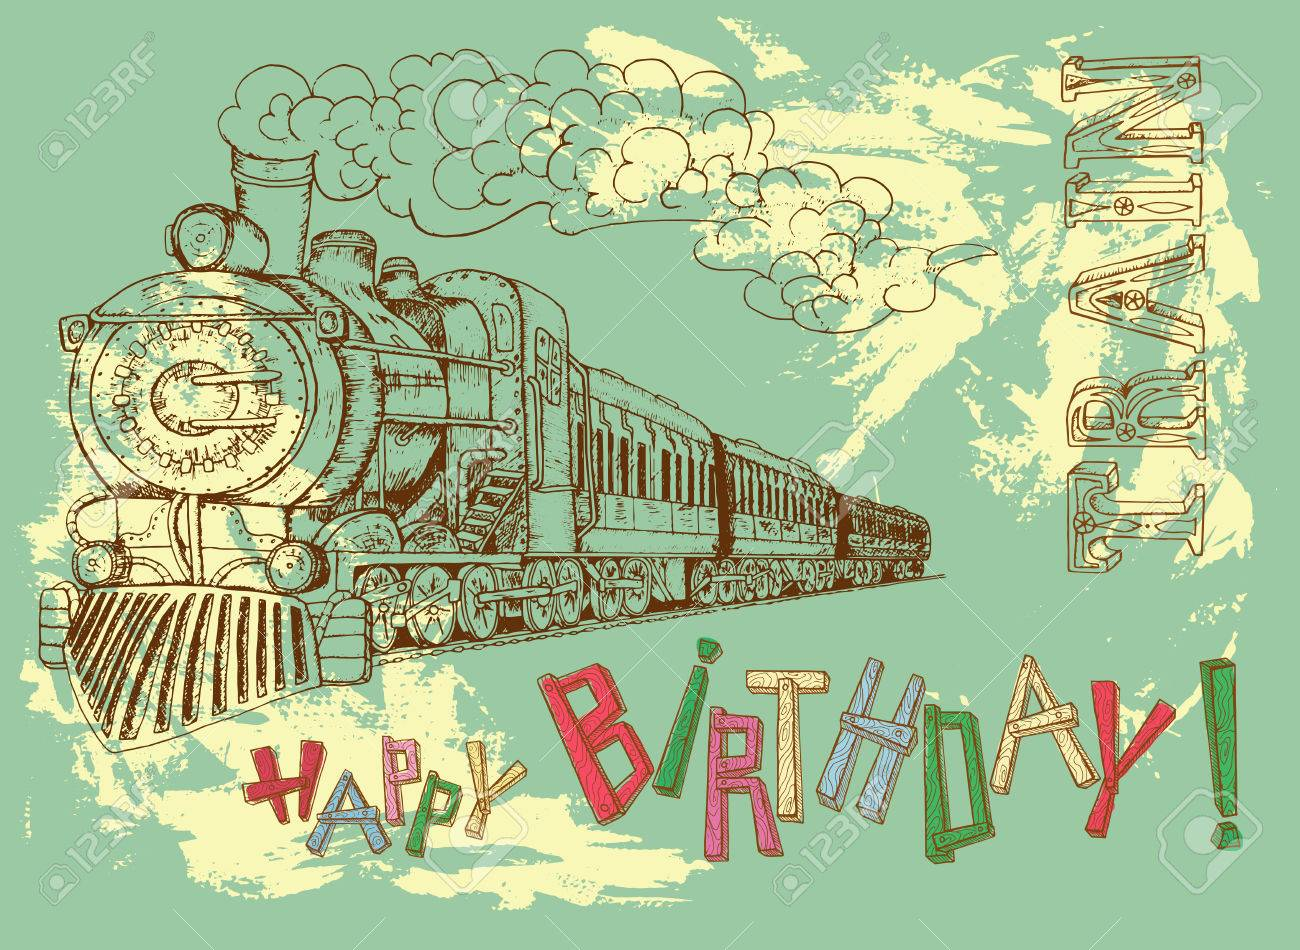 1300x950 Retro Happy Birthday Card With Steam Train And Colorful Letters